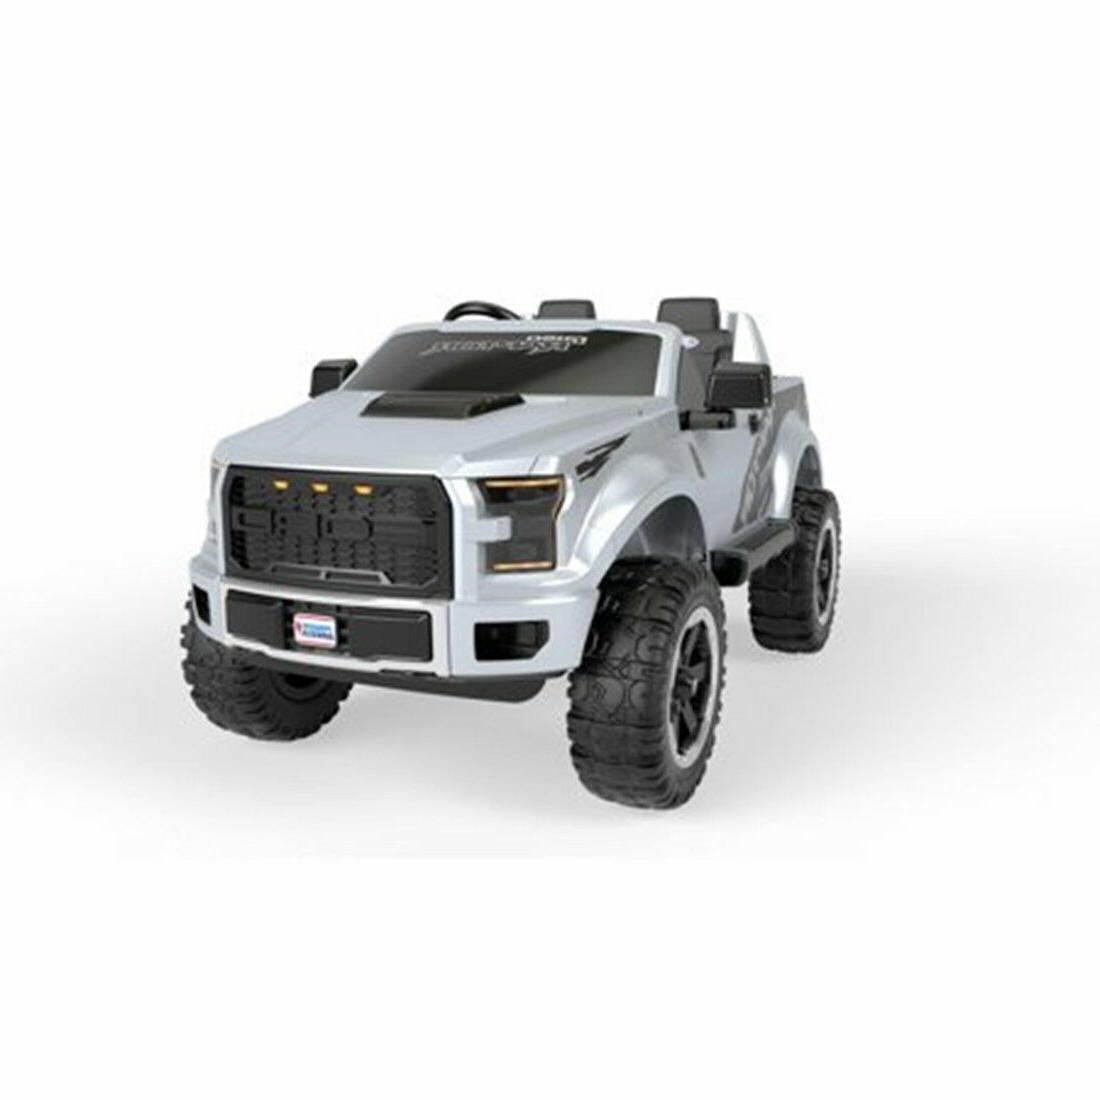 Power Electric Ford F-150 on Extreme, Silver New